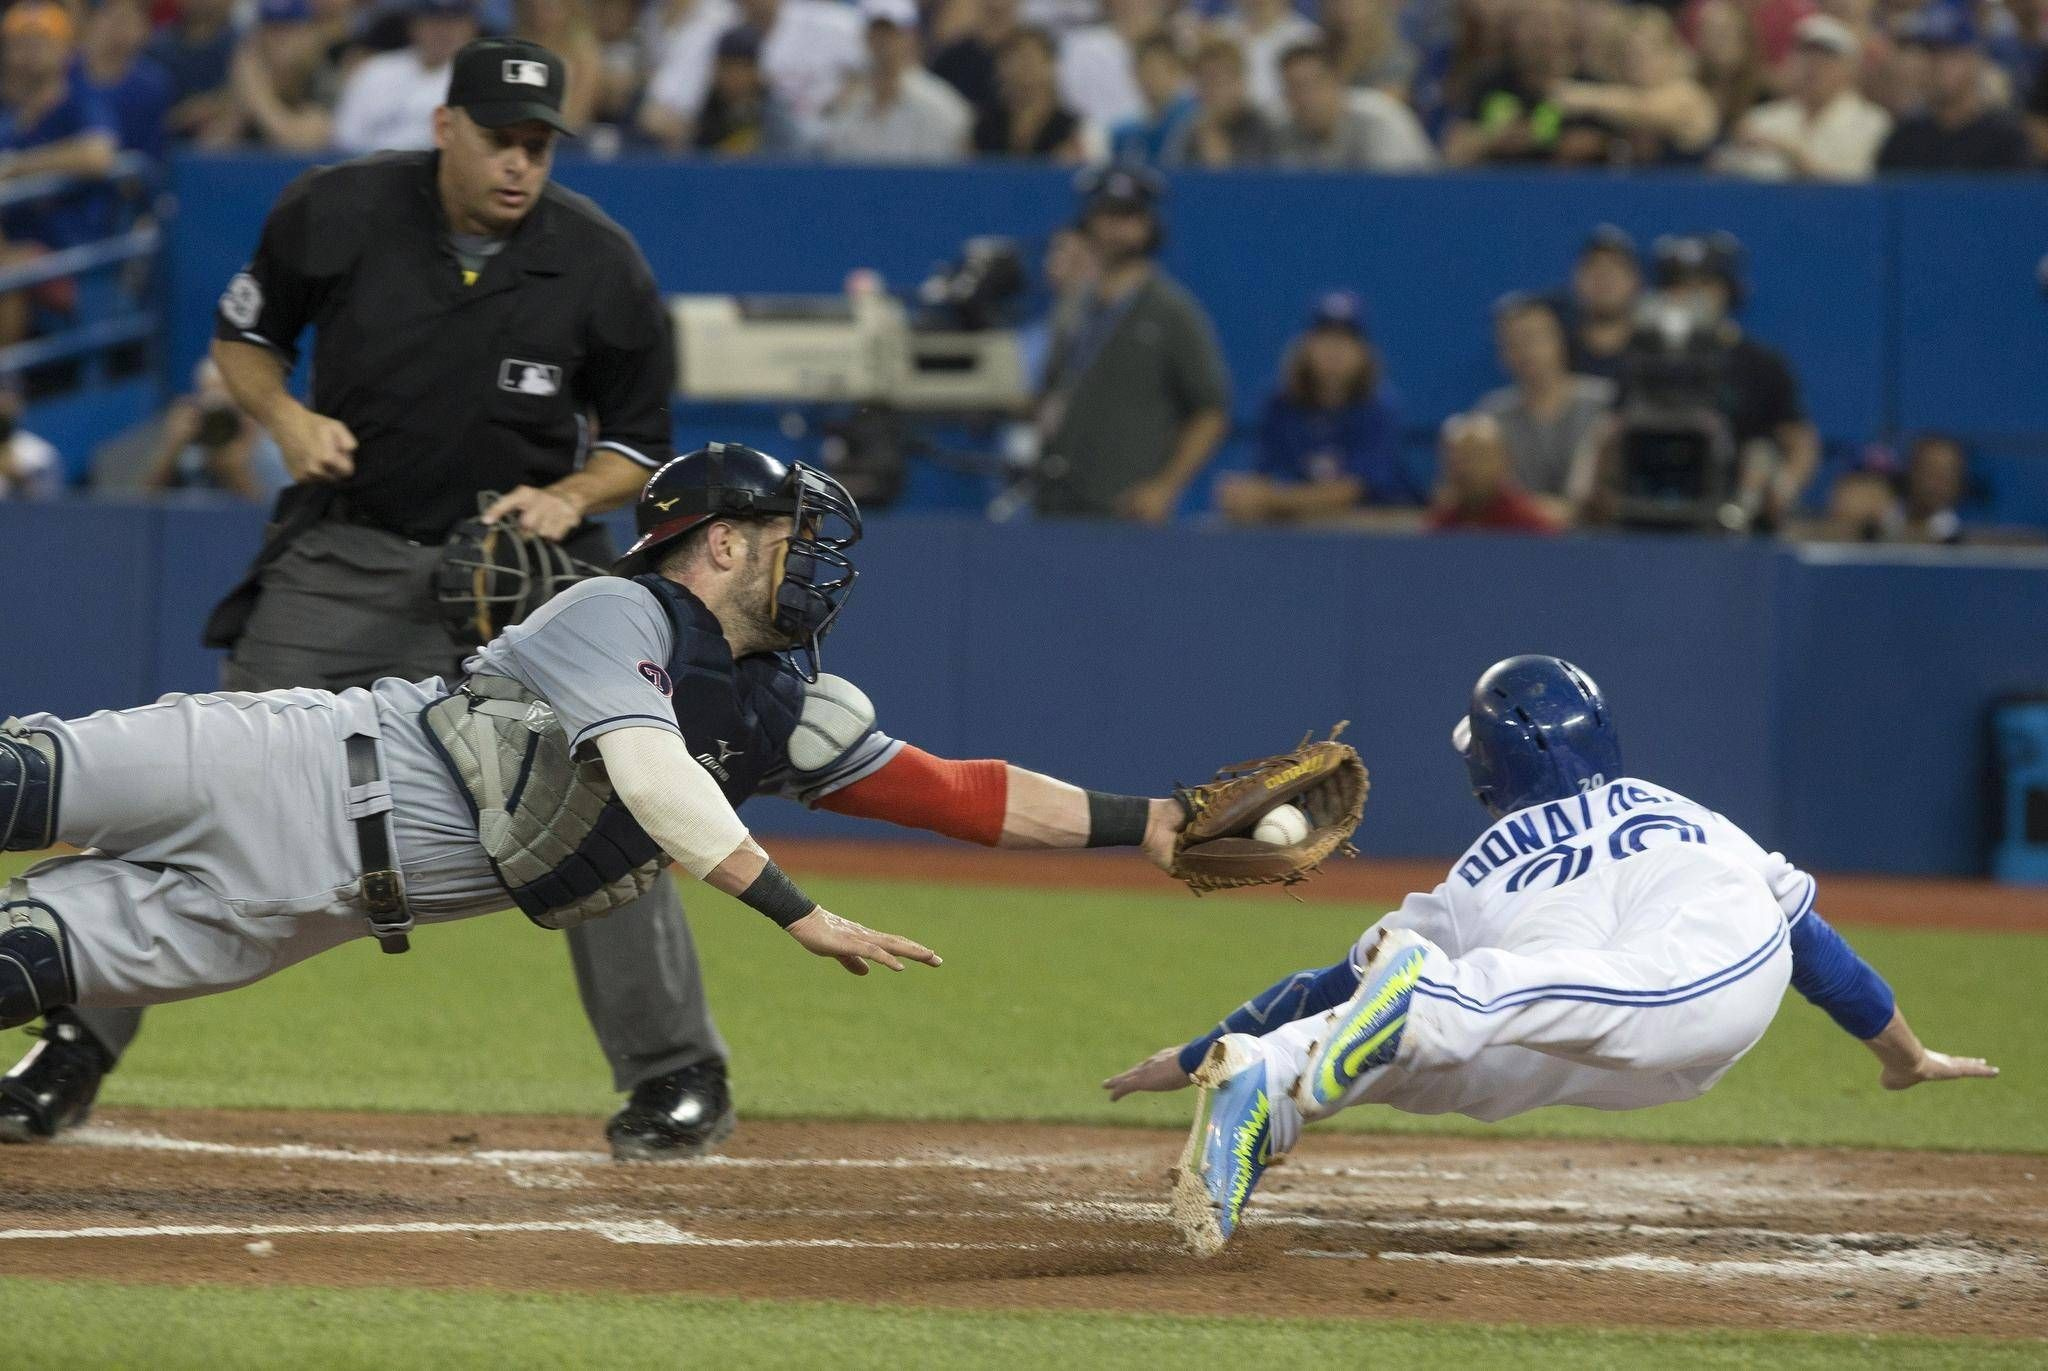 2048x1371 'He's a madman': Blue Jays manager couldn't believe Donaldson's daring  headfirst dive home